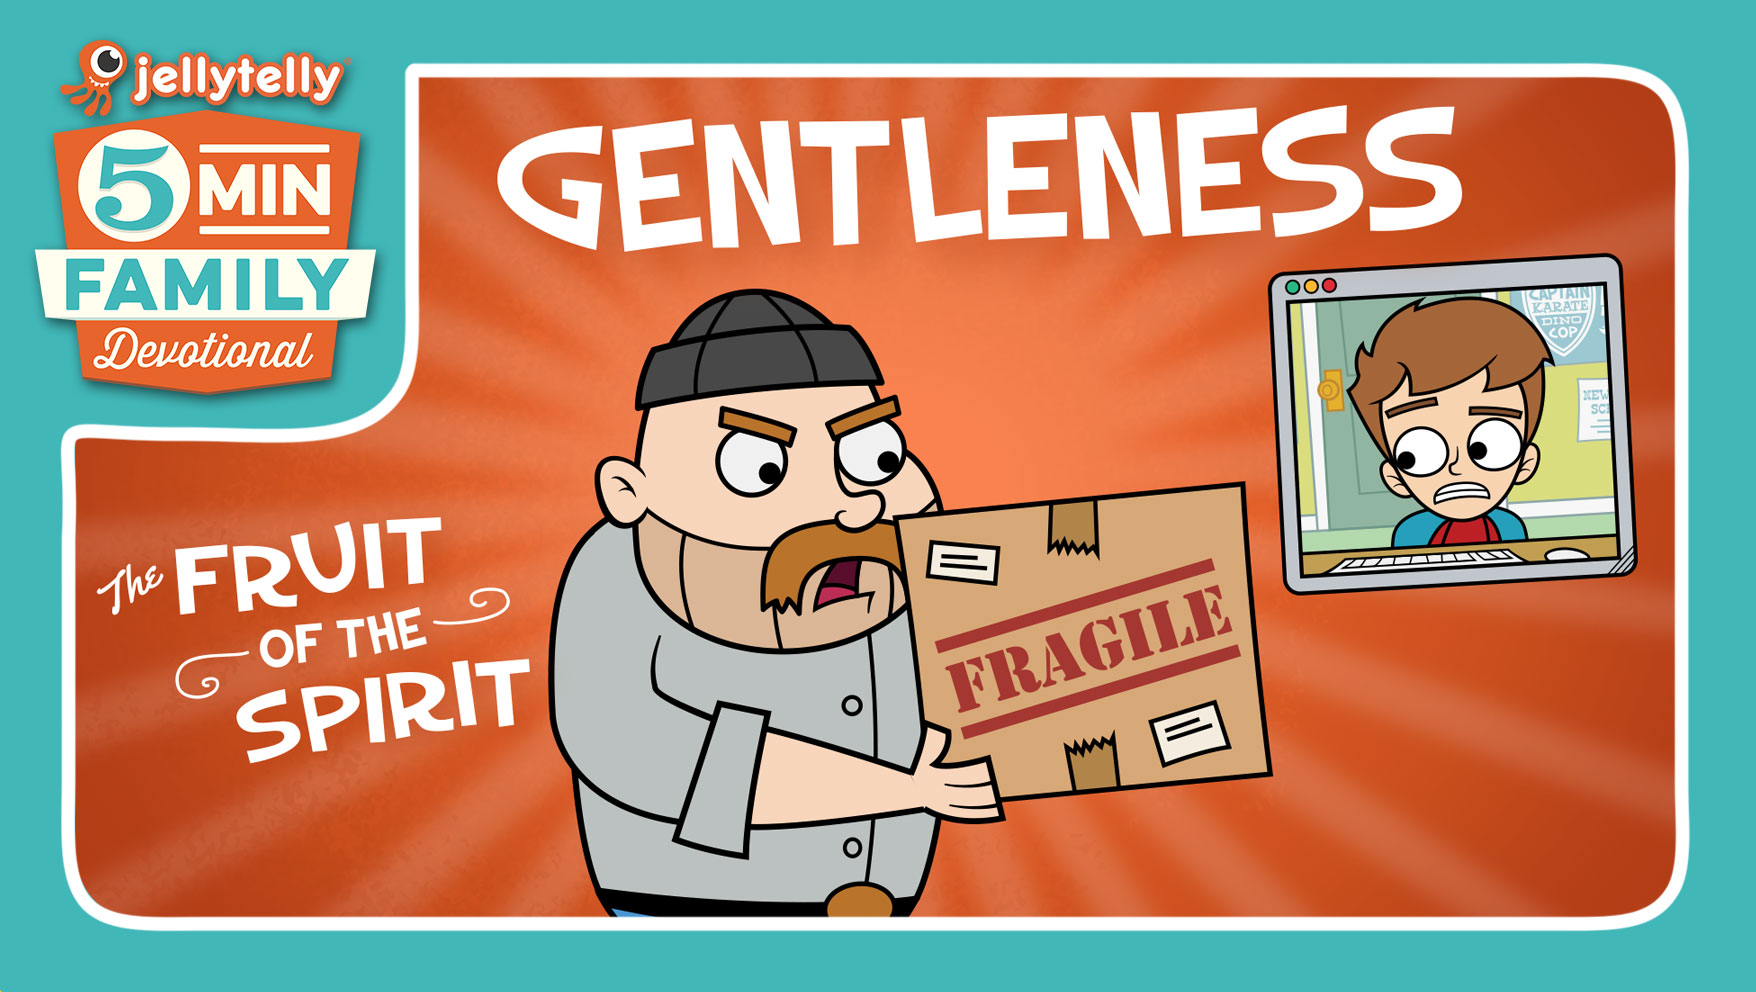 Gentleness - The Fruit of the Spirit 5 Minute Family Devotional